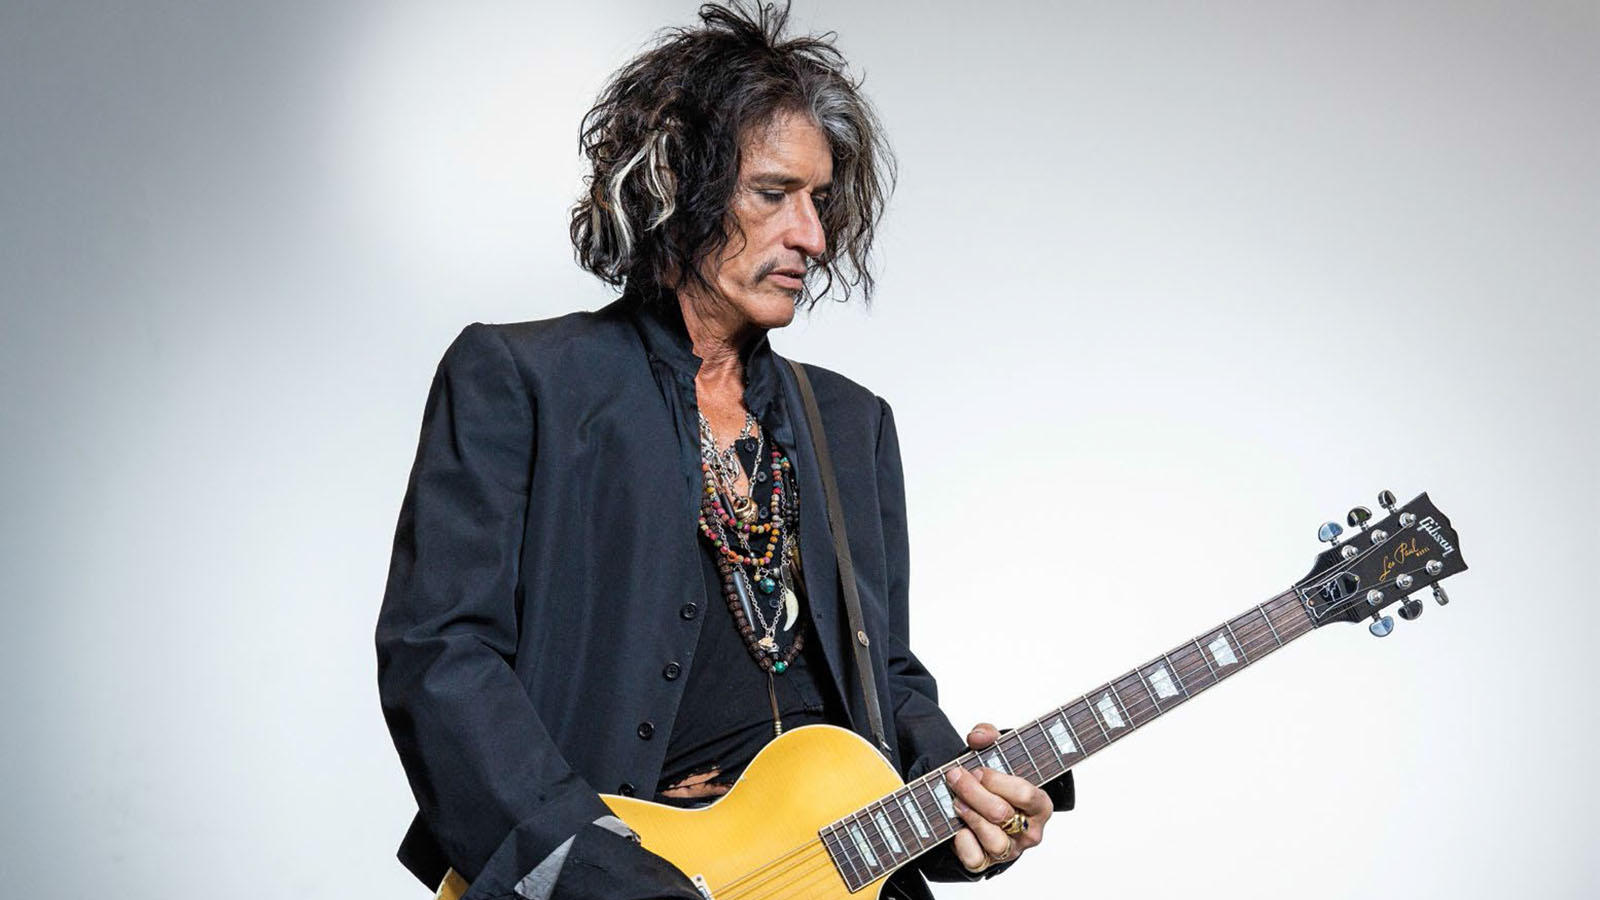 Joe Perry It S Probably The Closest I M Ever Going To Get To Adorning A Les Paul With All My Little Touches Guitar World To connect with joe perry, log in or create an account. joe perry it s probably the closest i